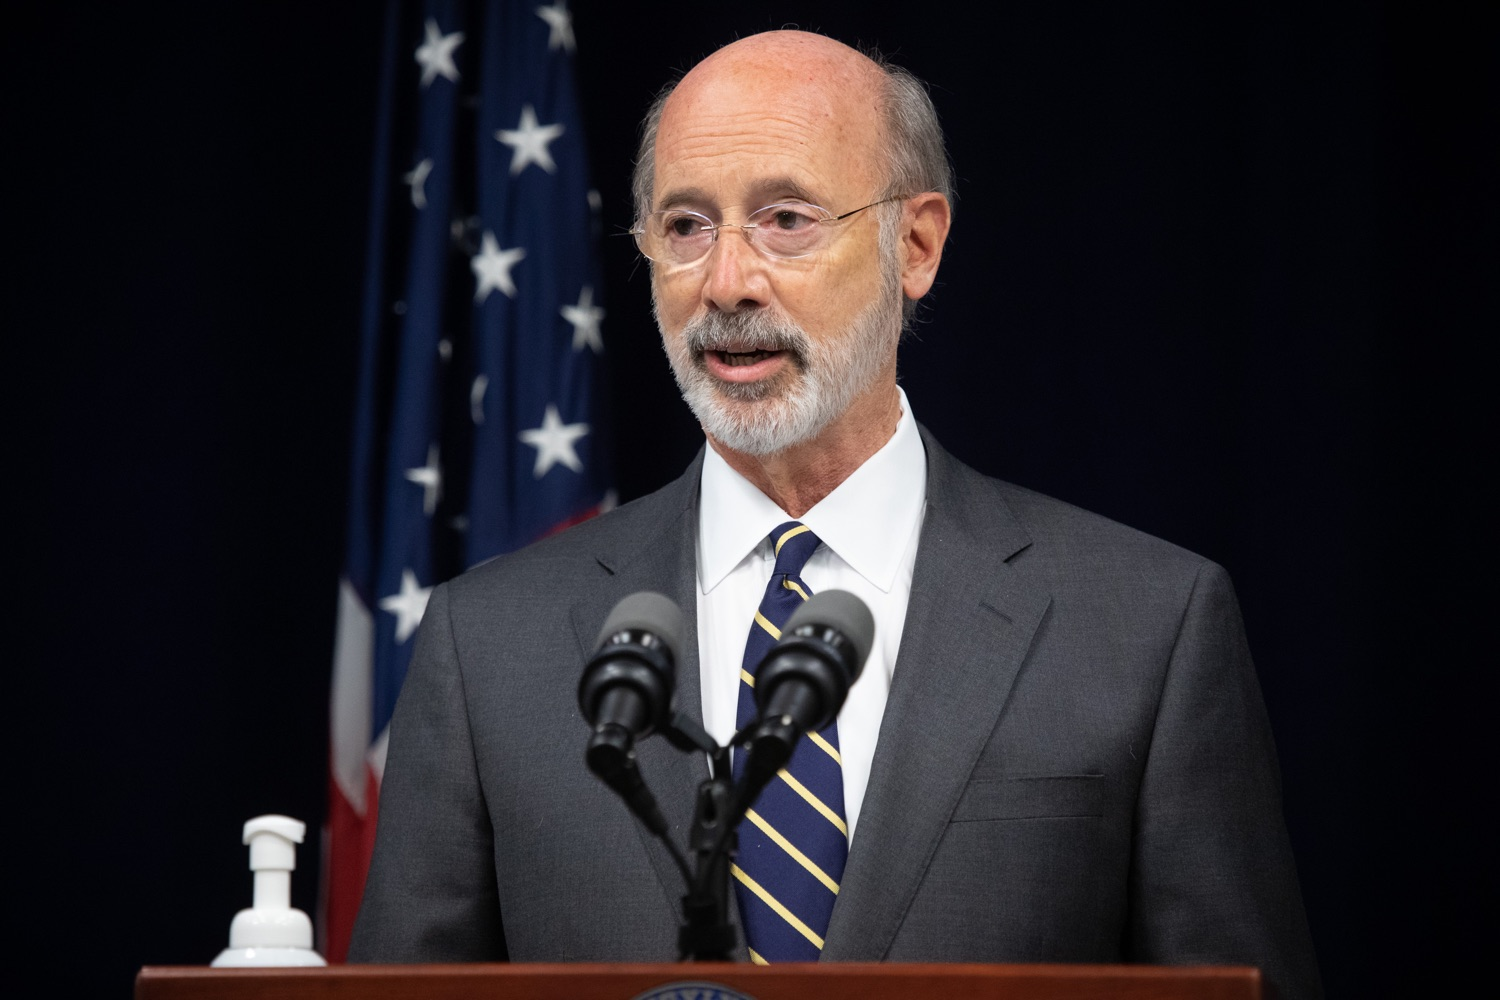 "<a href=""https://filesource.wostreaming.net/commonwealthofpa/photo/18141_gov_sb637_bill_signing_dz_10.jpg"" target=""_blank"">⇣ Download Photo<br></a>Pennsylvania Governor Tom Wolf speaking with the press.  Building on his criminal justice reforms and fulfilling a recommendation to modernize job licensing, Governor Tom Wolf today signed Senate Bill 637, which removes outdated licensing barriers so skilled workers with criminal records can get a second chance and start good careers. The governor has advocated for sweeping changes to the licensing process for years. Harrisburg, PA  July 1, 2020"